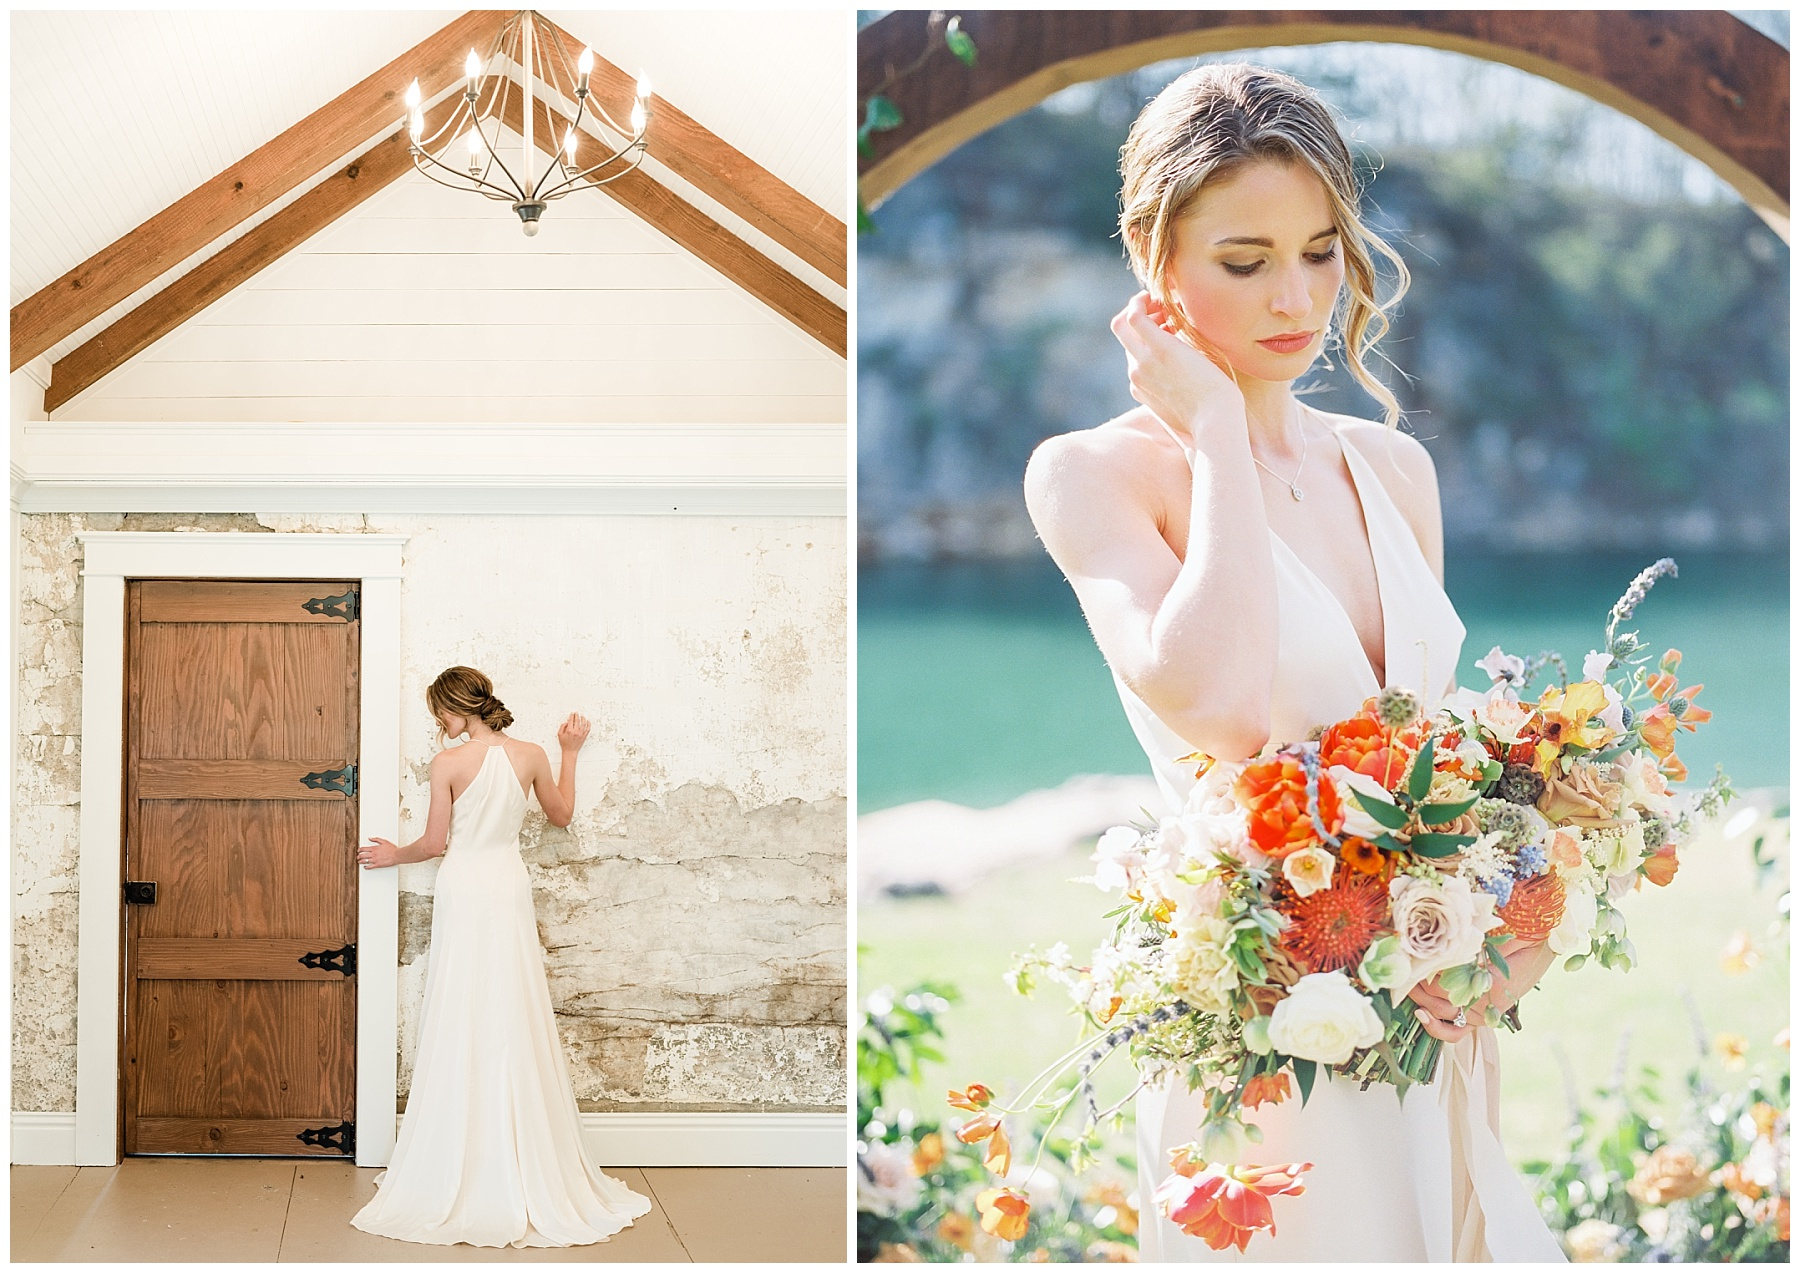 Intimate Spanish and French Inspired Destination Wedding with Lakeside Dinner Party at Dusk at Wildcliff by Kelsi Kliethermes Photography Best Missouri and Maui Wedding Photographer_0049.jpg